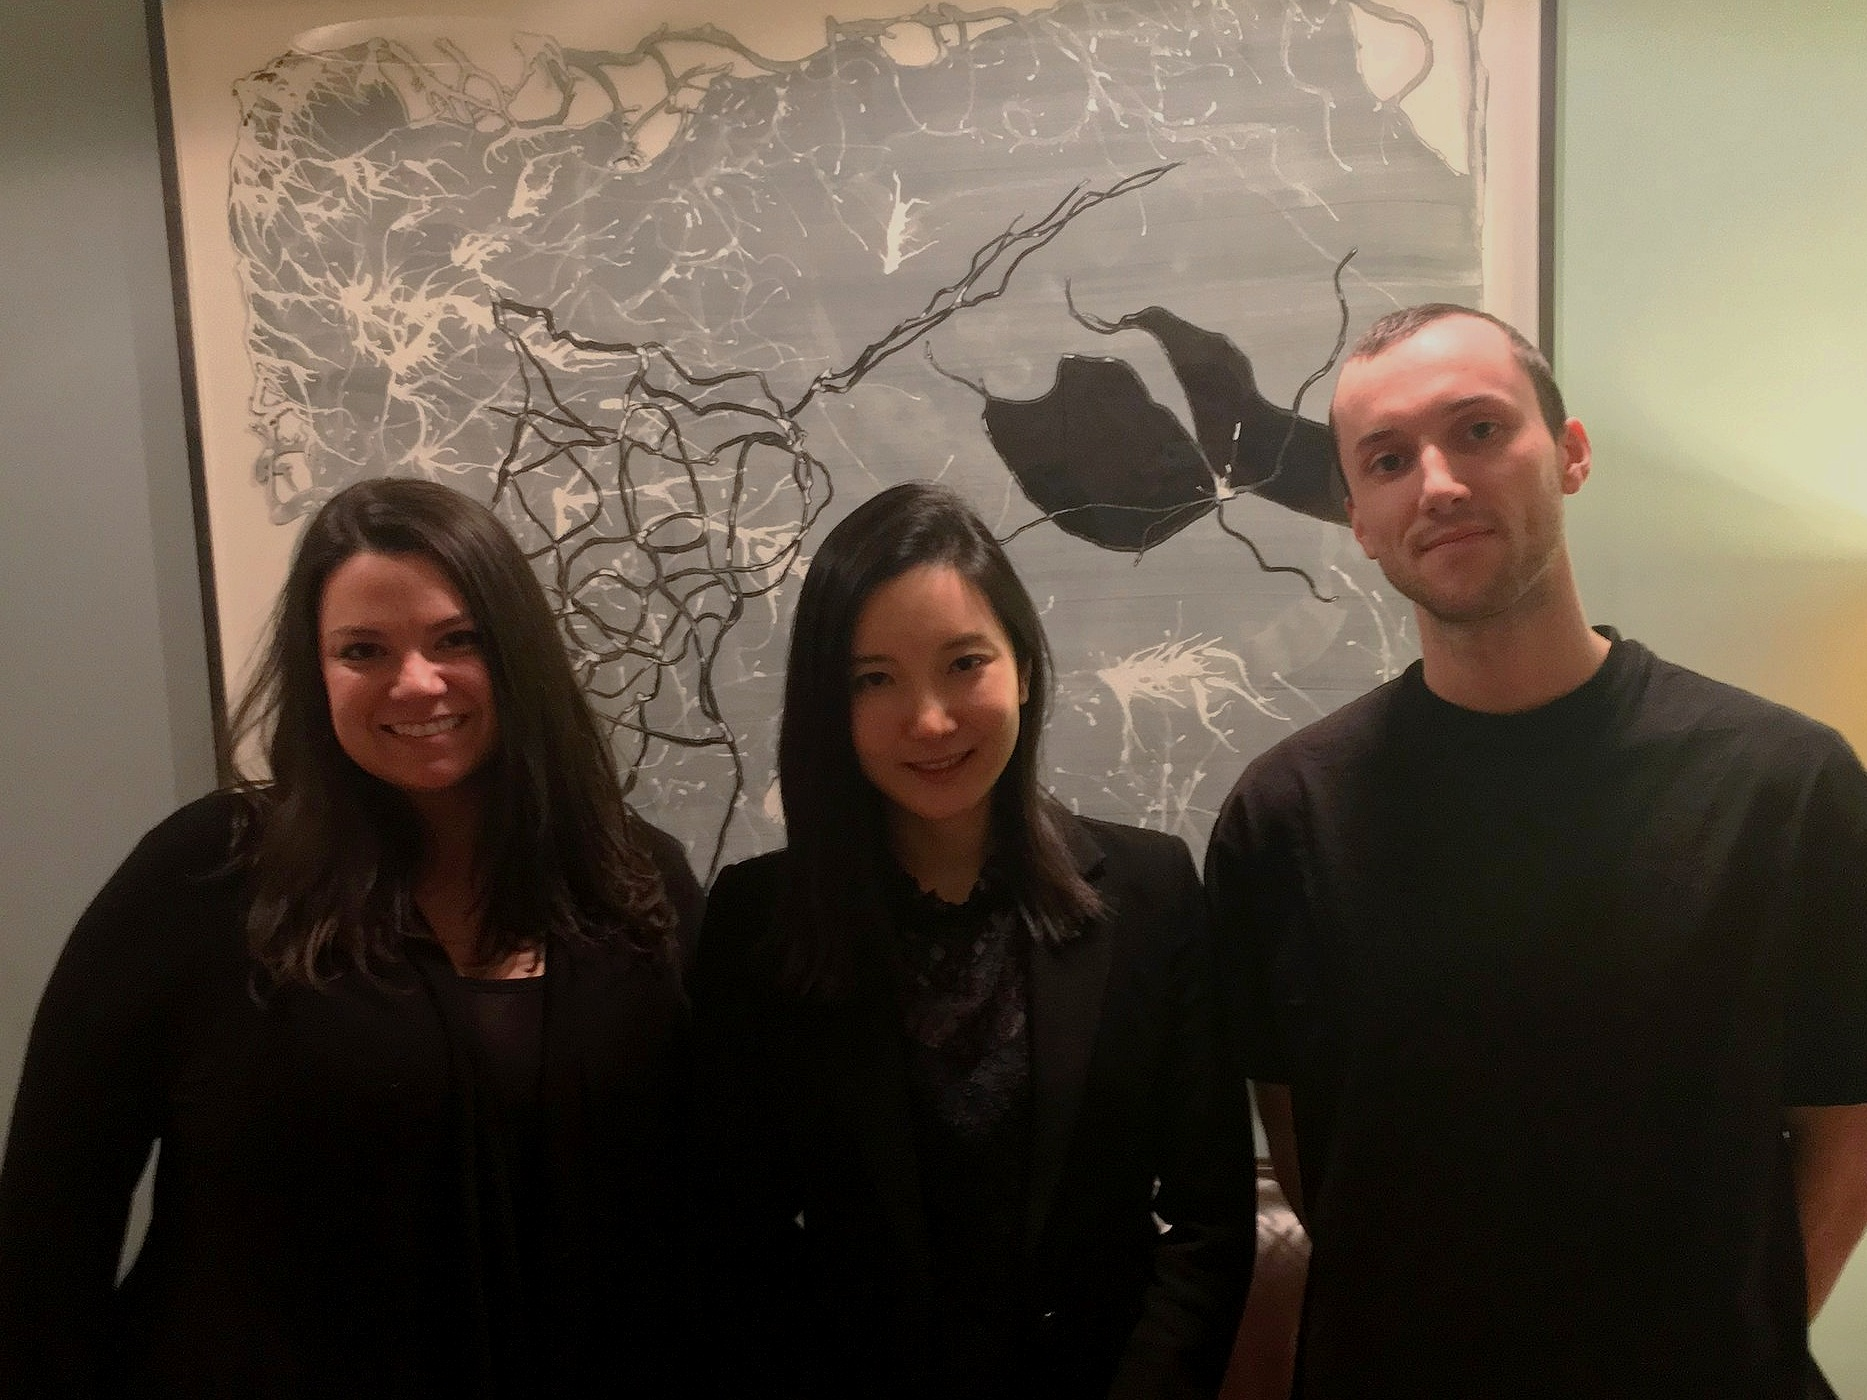 Pictured left to right: producer  Amanda Bloom  from Crossover Media, cellist  Hee-Young Lim , and Dubway engineer  Keenan DuBois  in the Dubway lobby after a day of interviews.